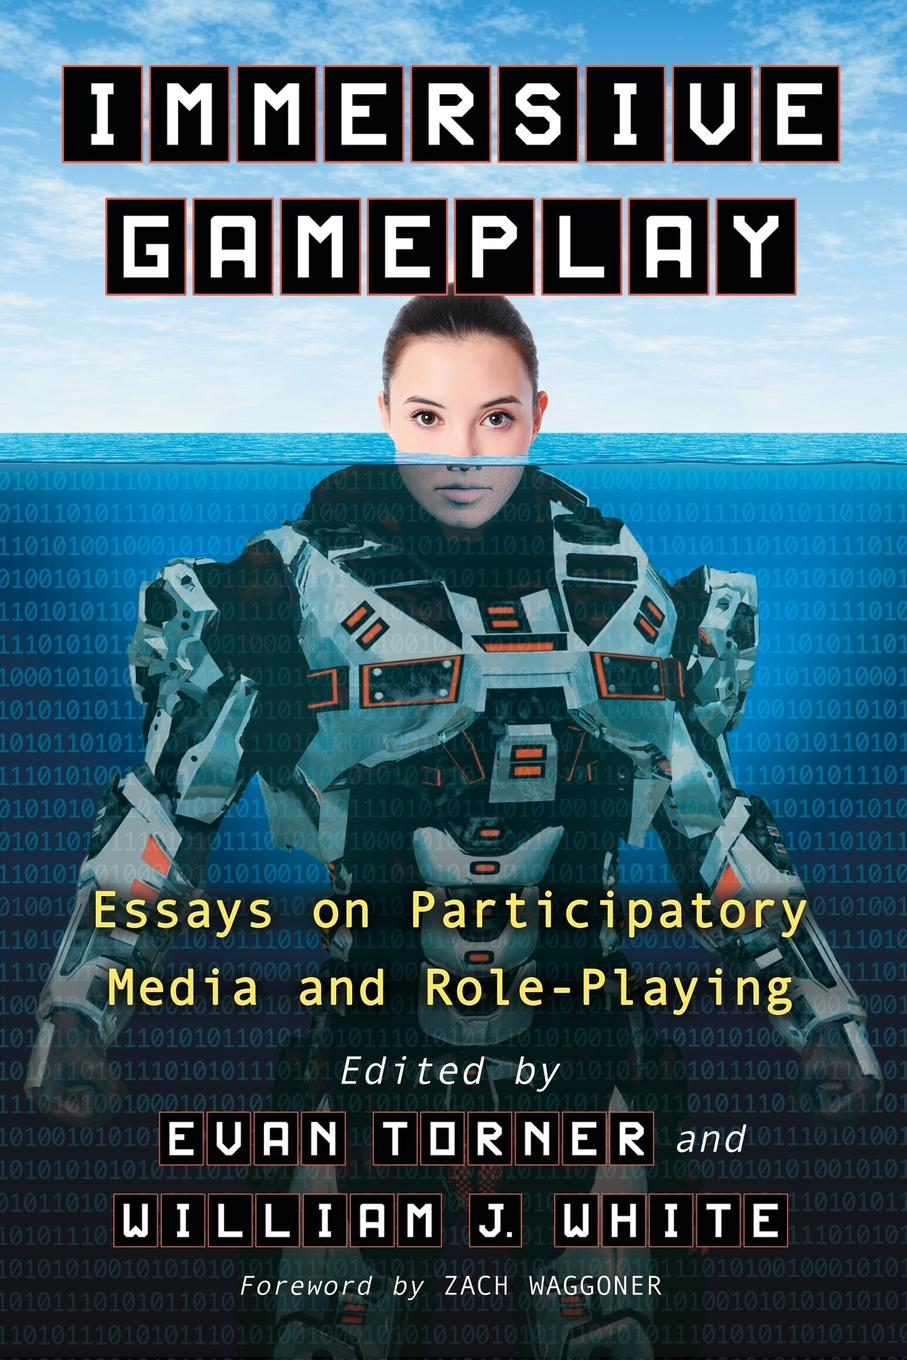 Immersive Gameplay. Essays on Participatory Media and Role-Playing hoyle s rules of games